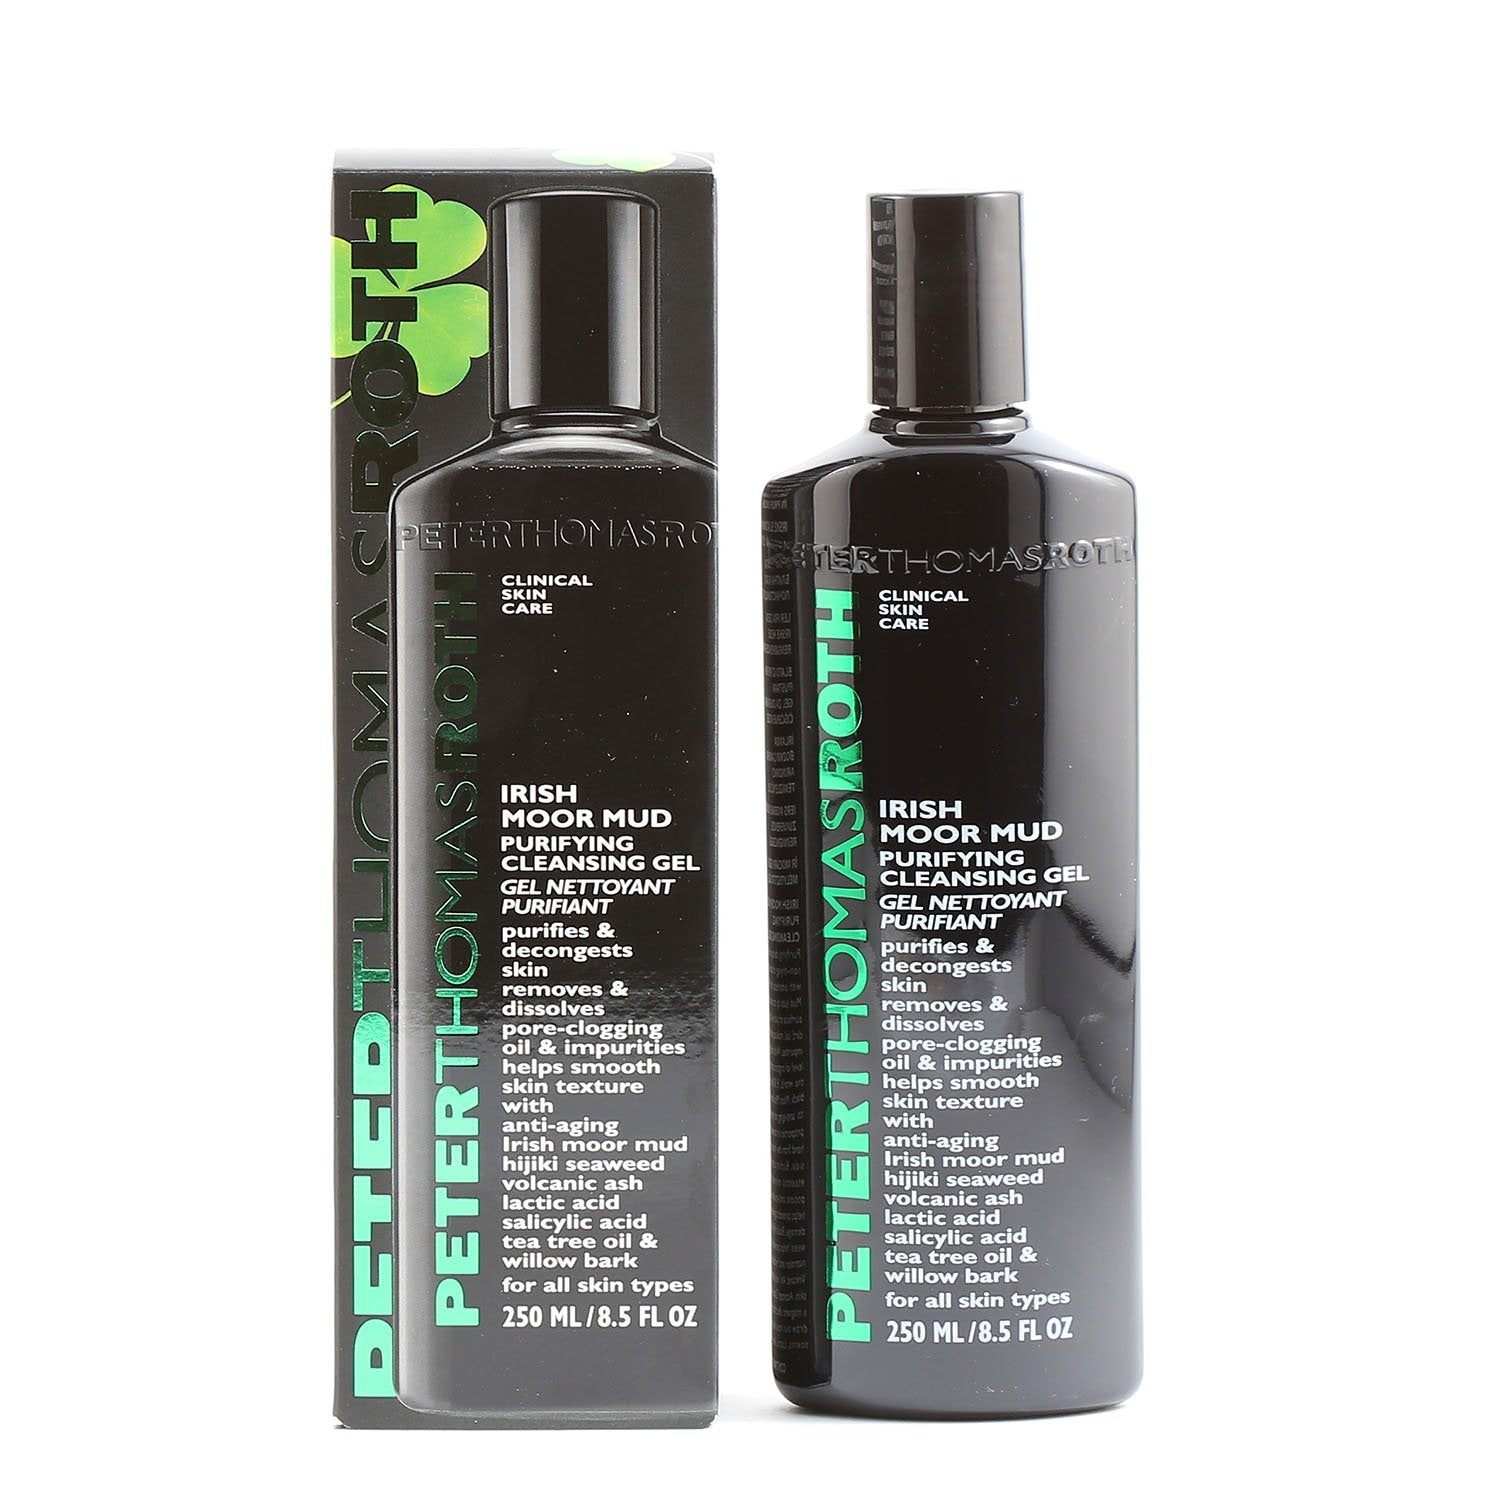 Skin Care - PETER THOMAS ROTH IRISH MOOR MUD PURIFYING CLEANSING GEL, 8.5 OZ